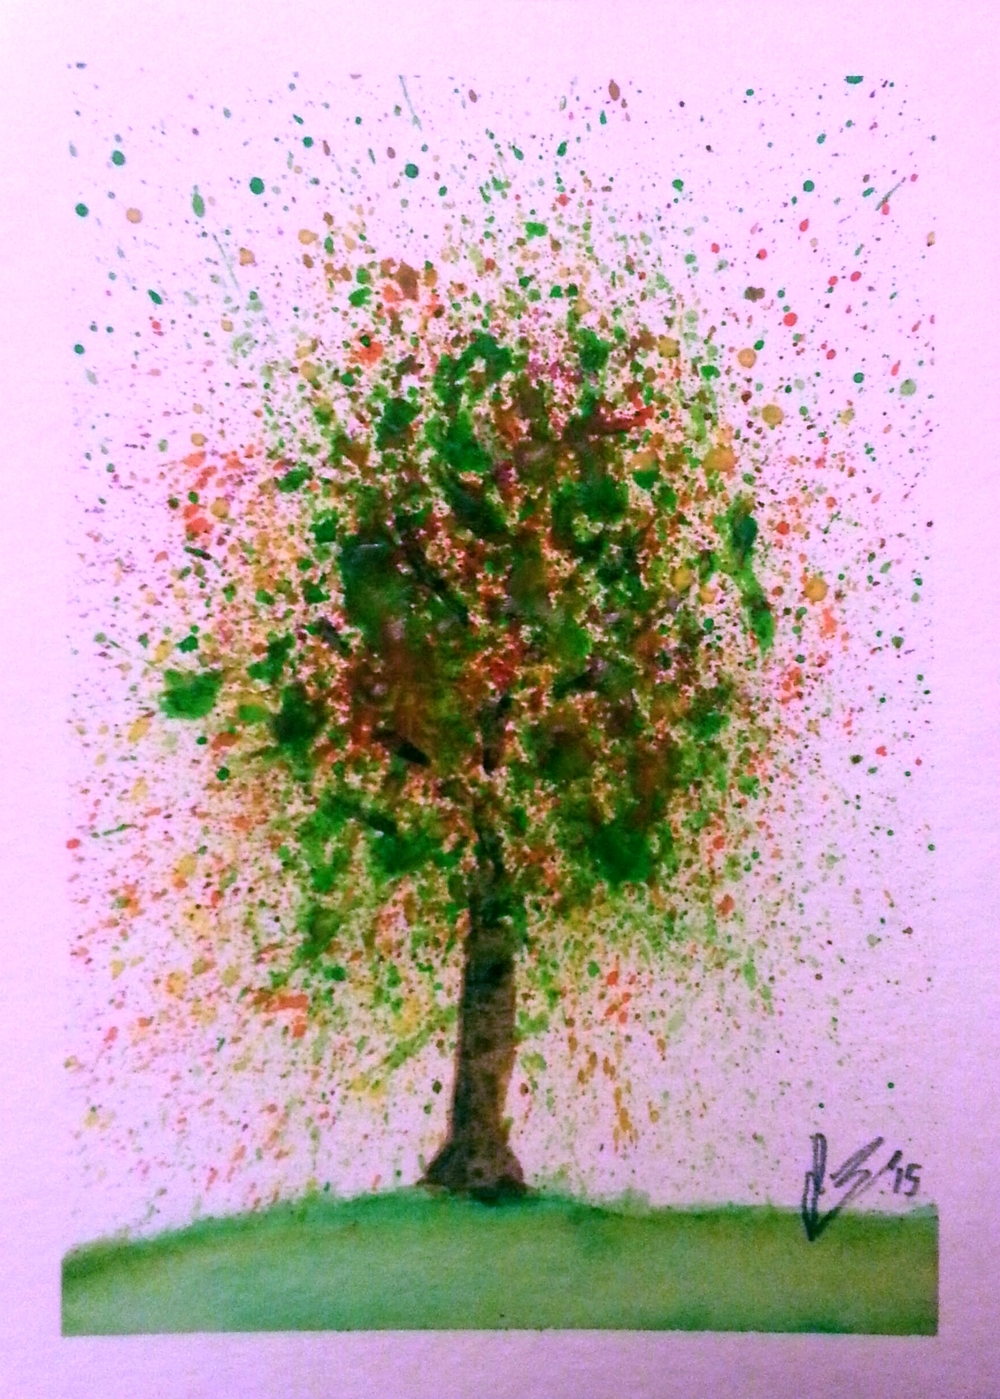 May, 2015  If Jackson Pollock were a tree...